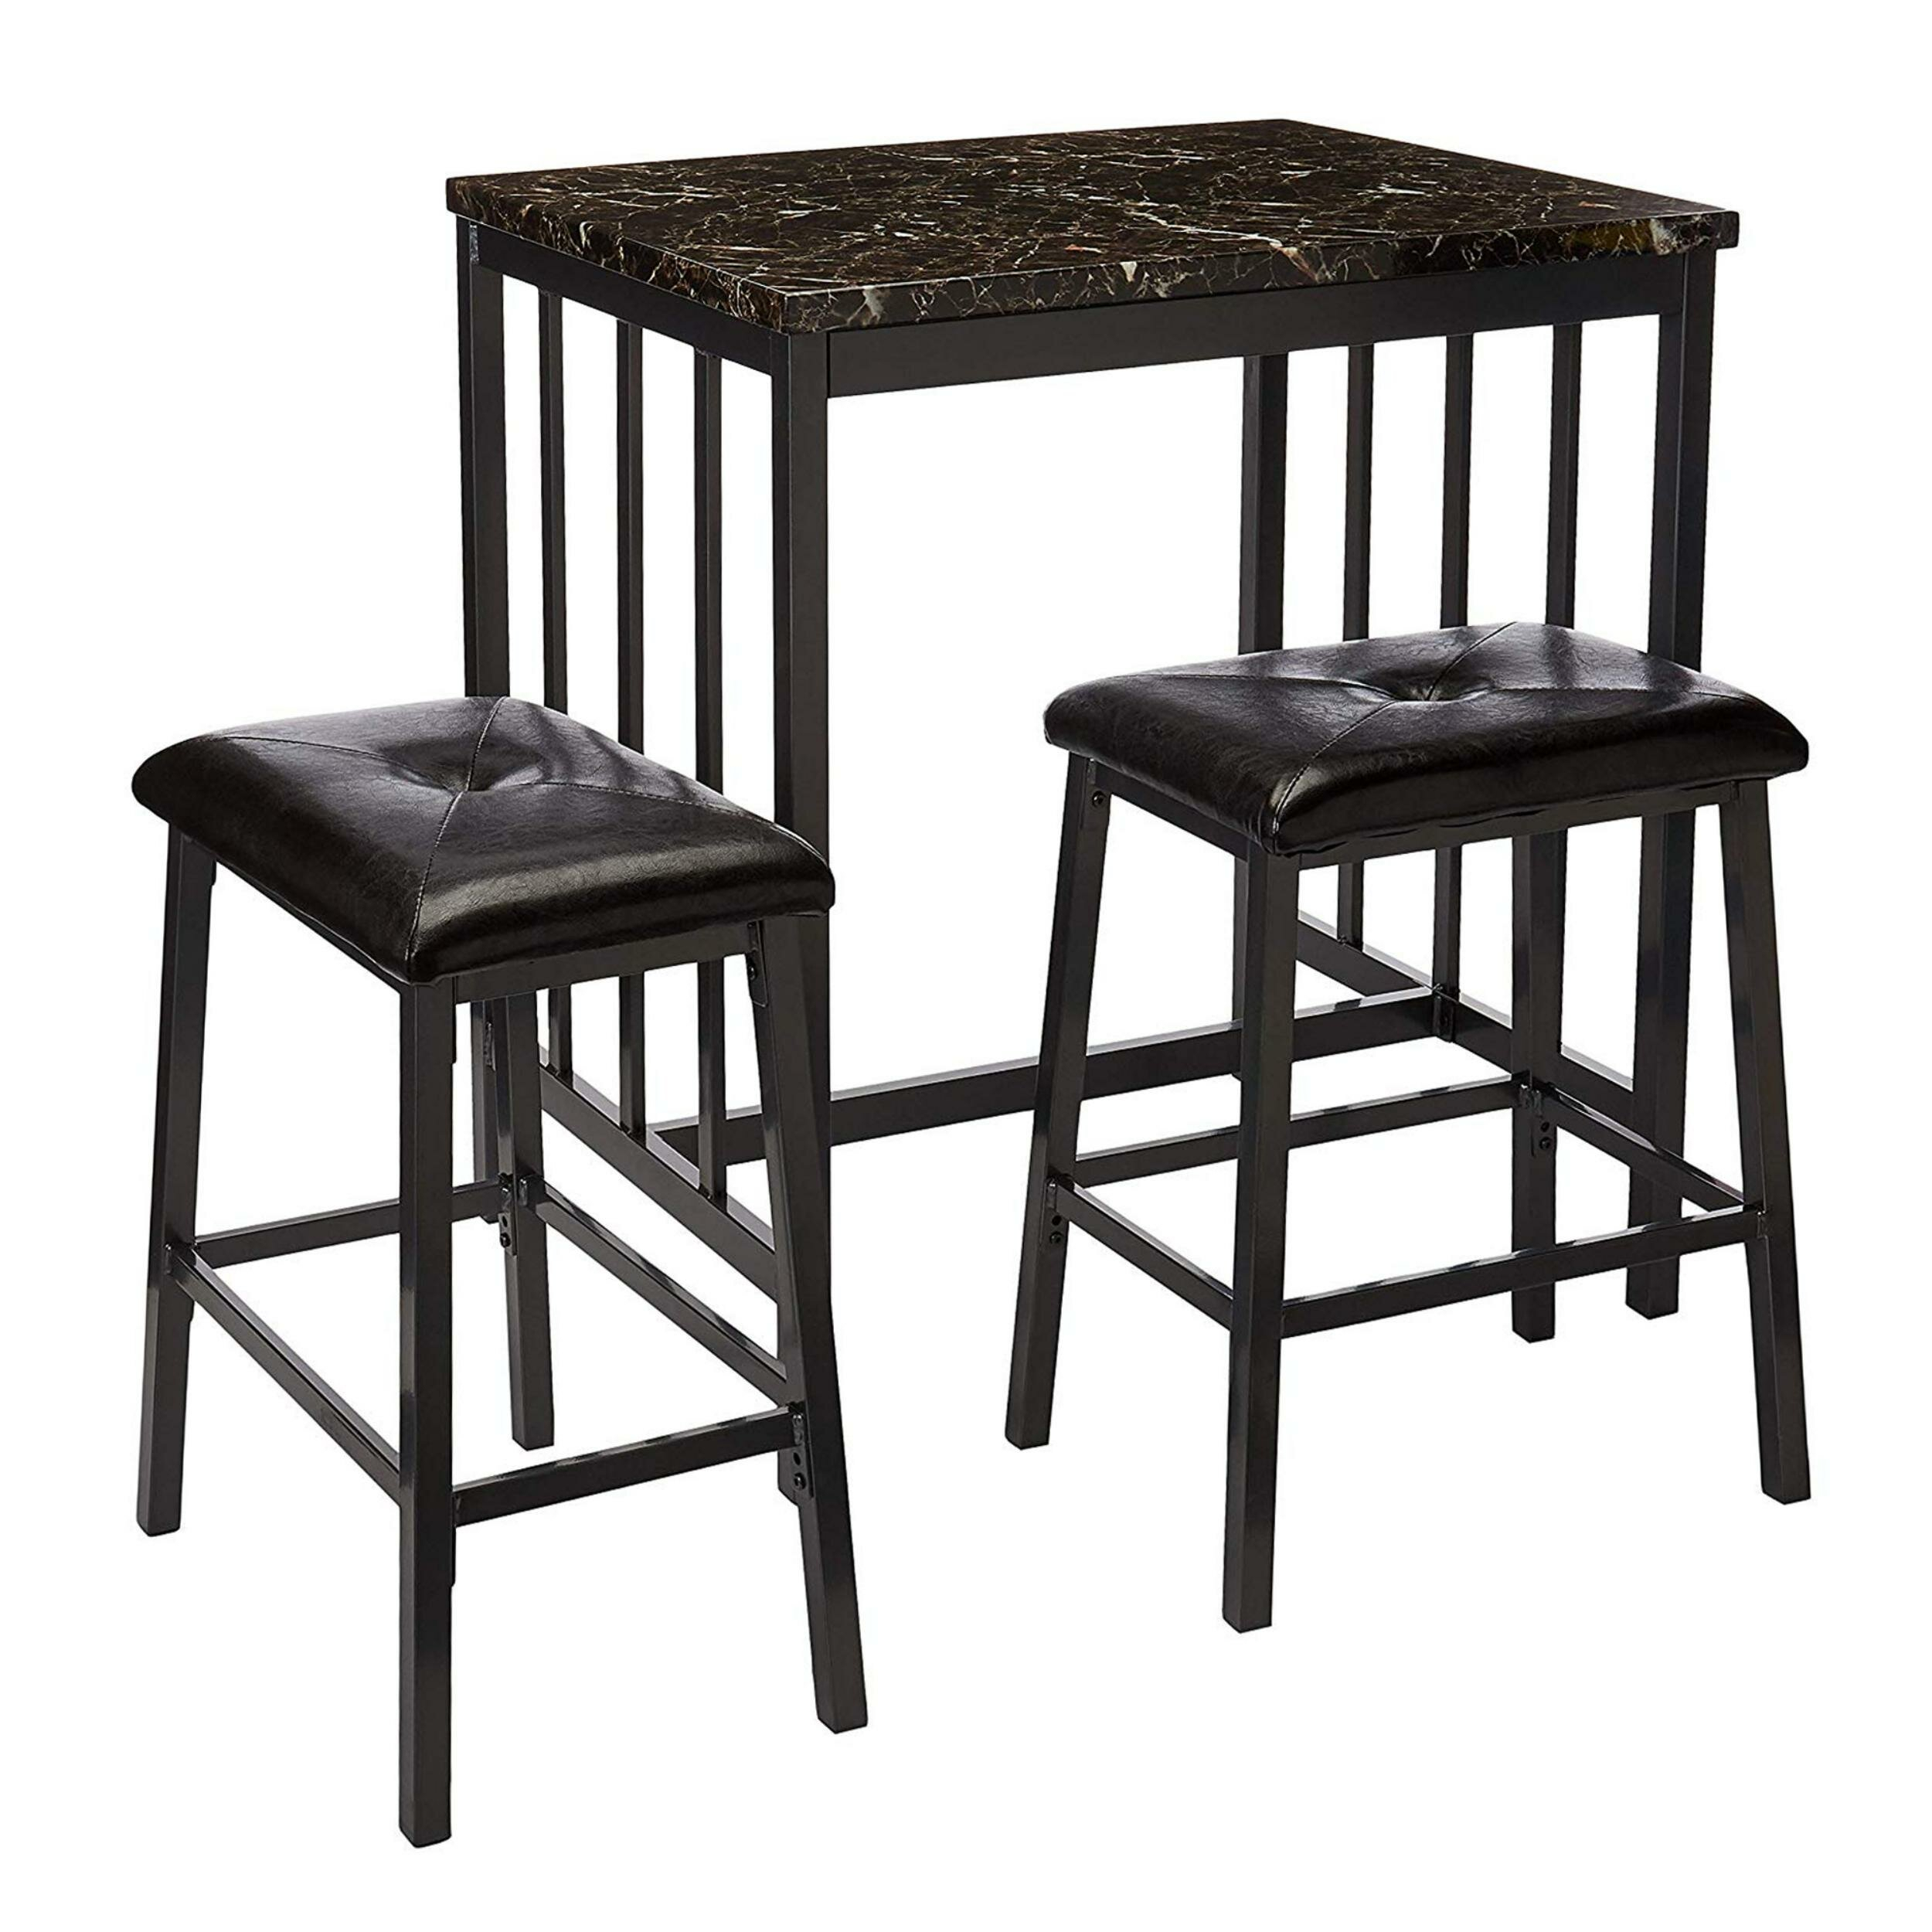 Presson 3 Piece Counter Height Dining Set Throughout 2018 Mizpah 3 Piece Counter Height Dining Sets (Image 17 of 20)